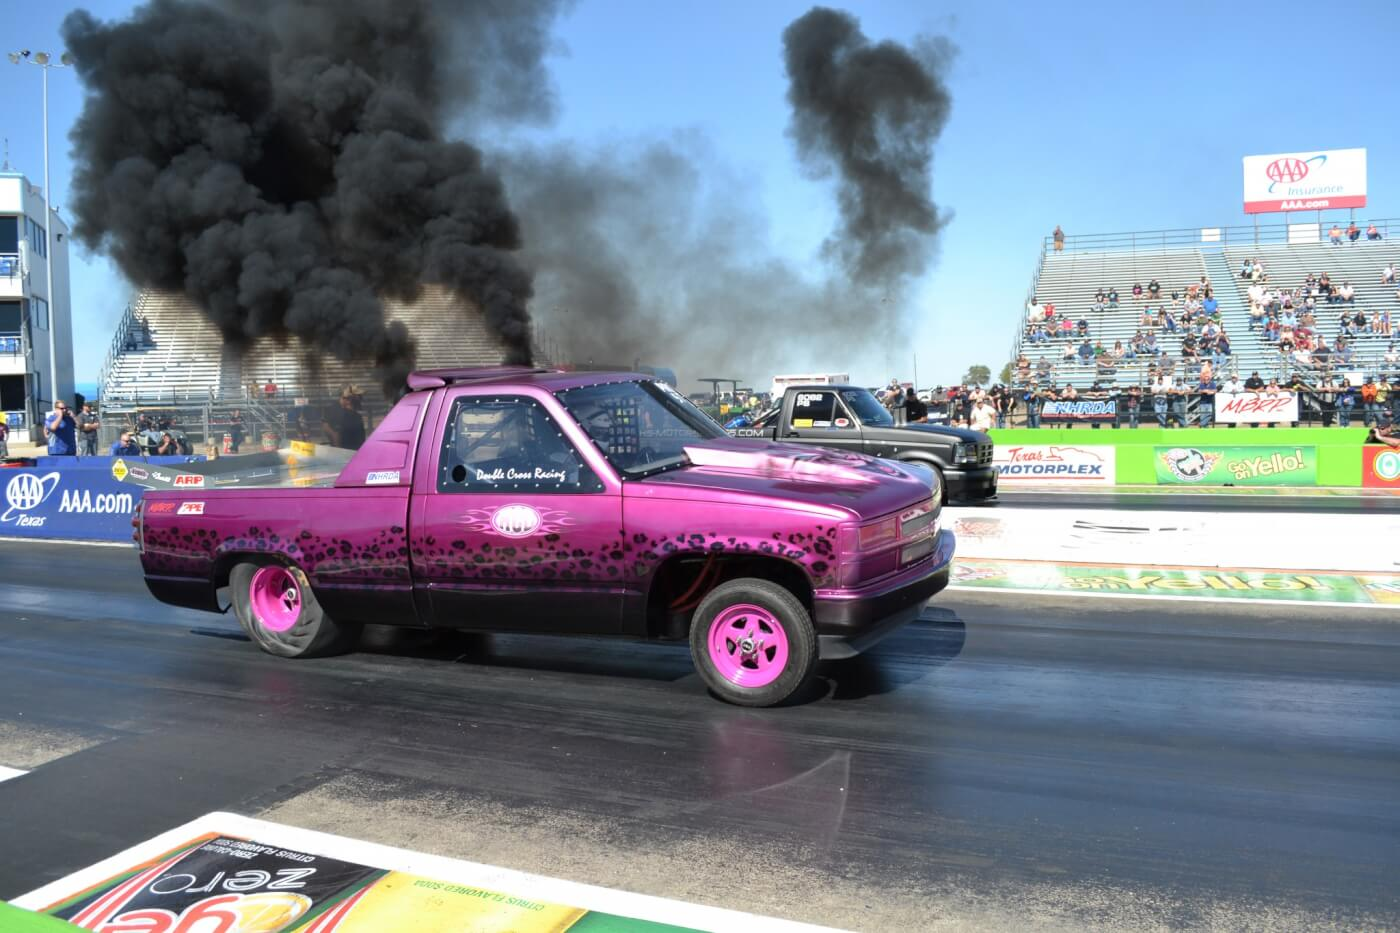 Malcolm Cross was another Canadian racer who made the trip and put on a good show. His brightly colored Cummins-powered Chevy managed a 9.17-second pass in Pro Street.